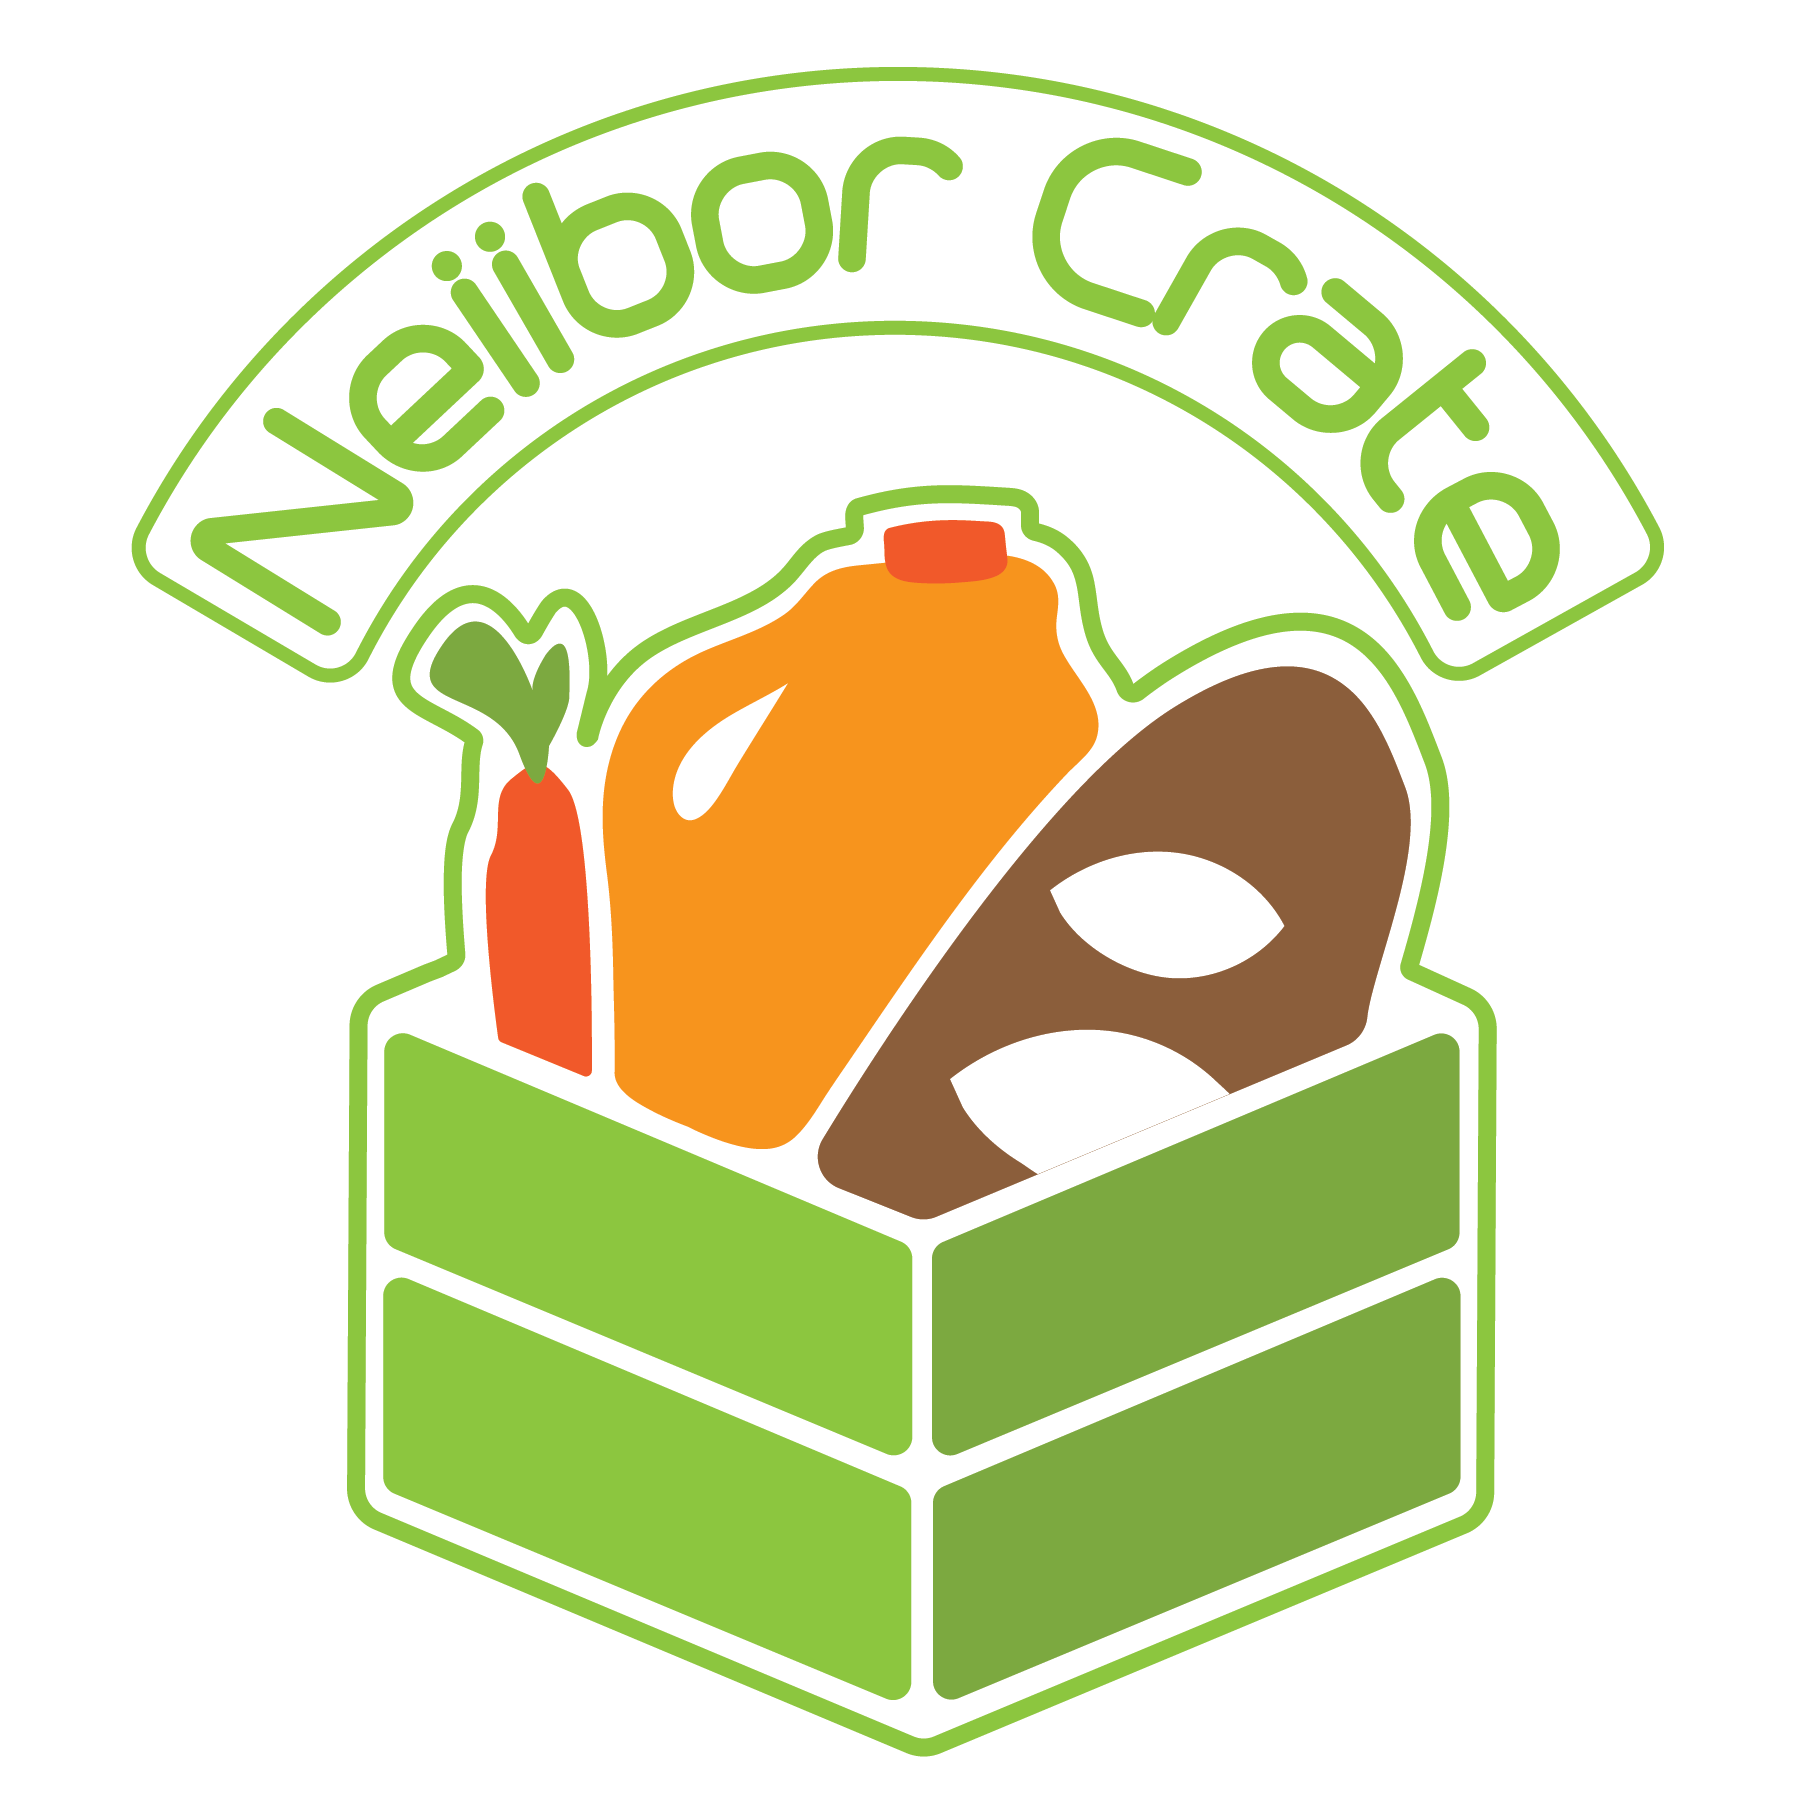 Neiibor Crate Home Page